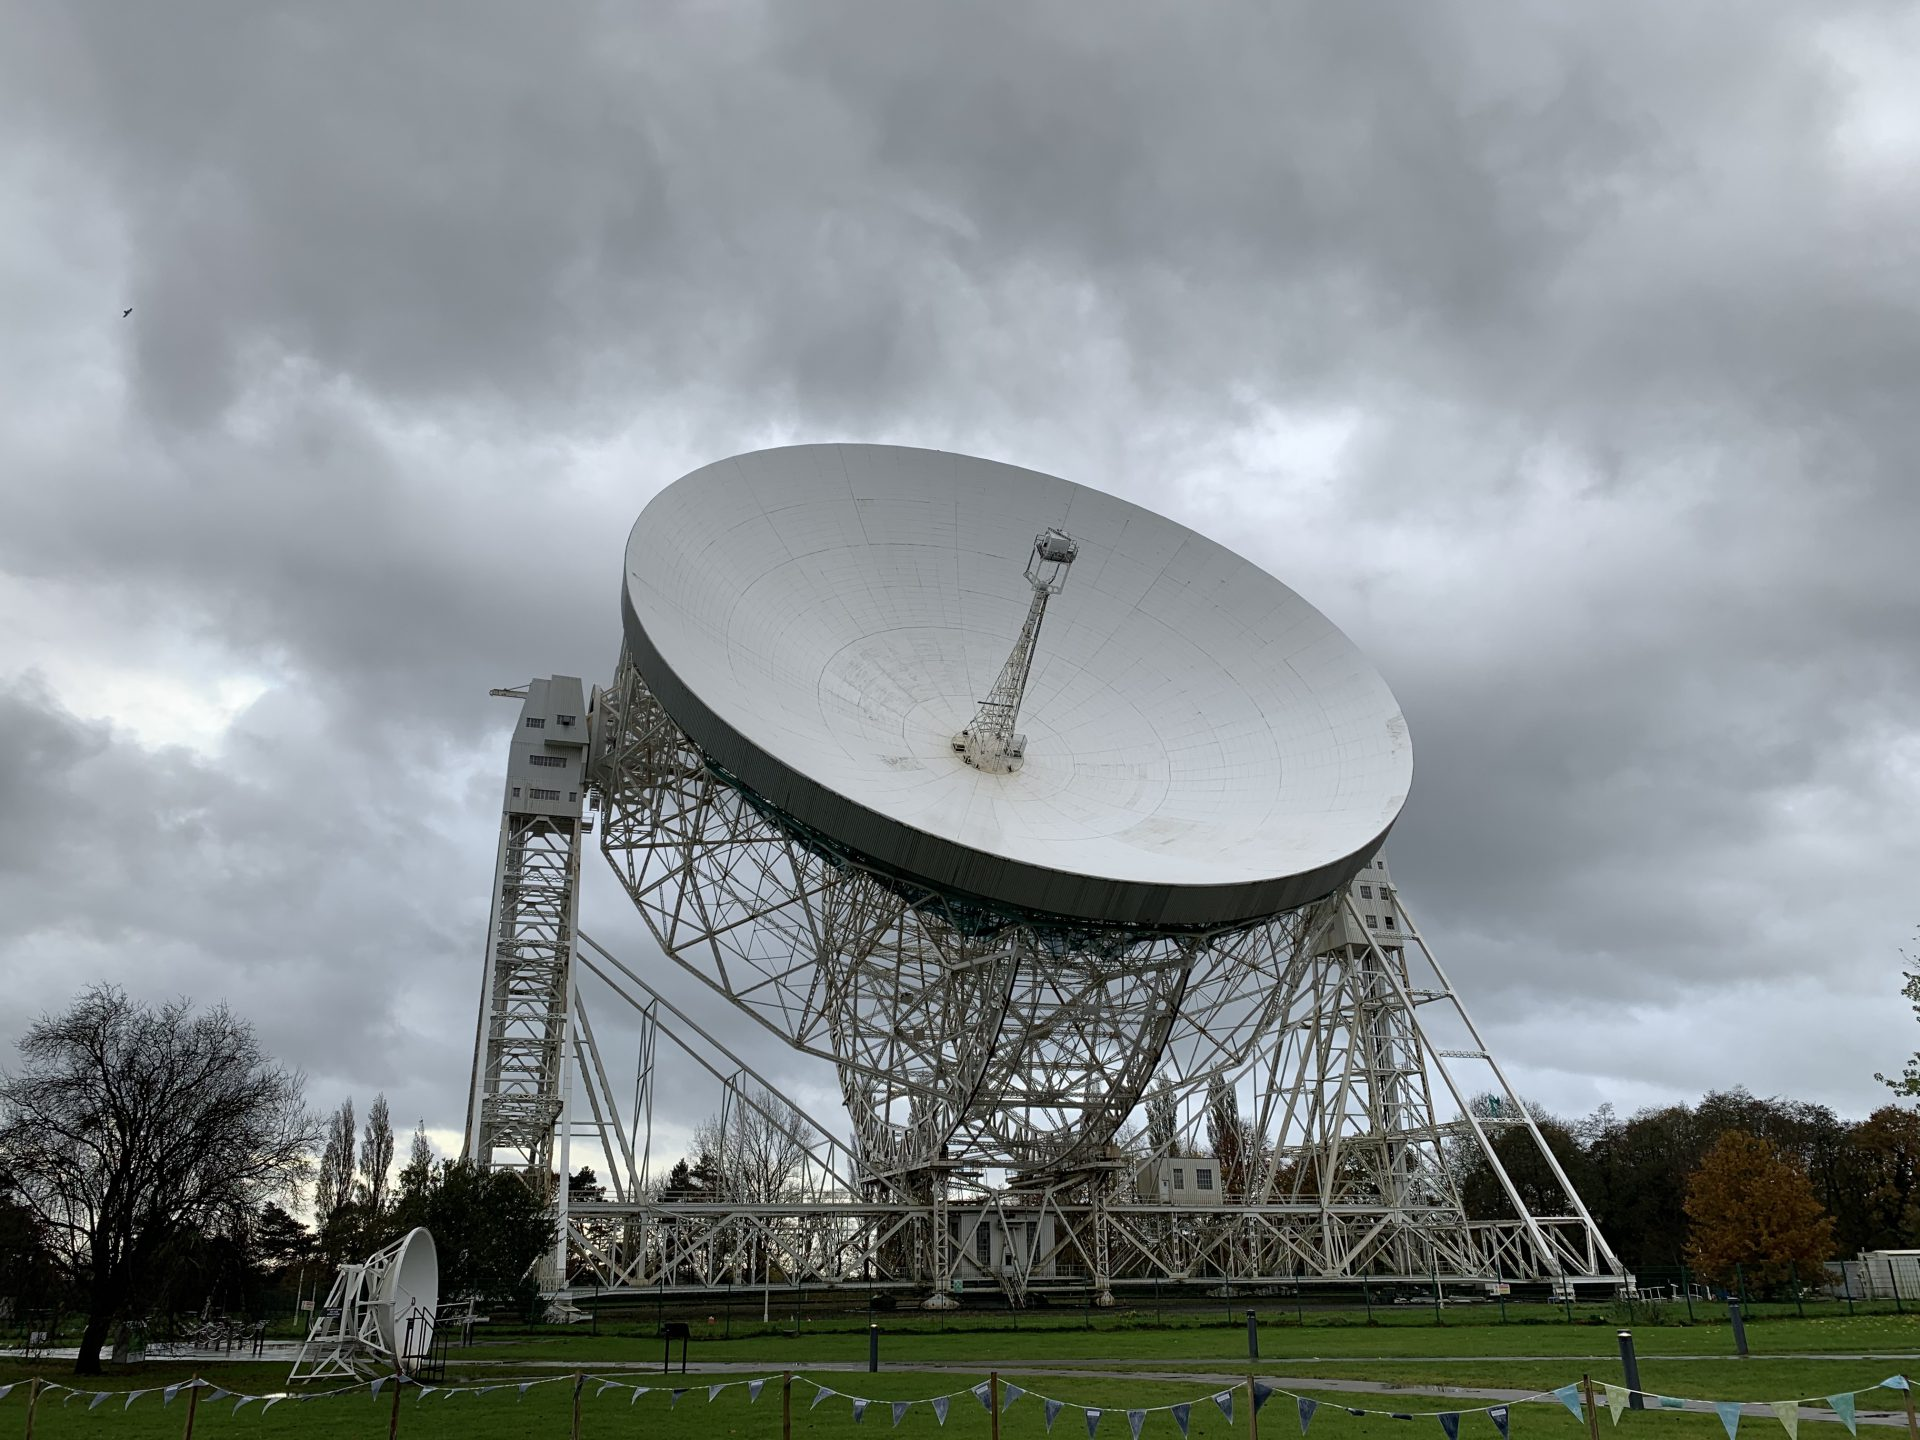 Jodrell Bank - Lovell Telescope